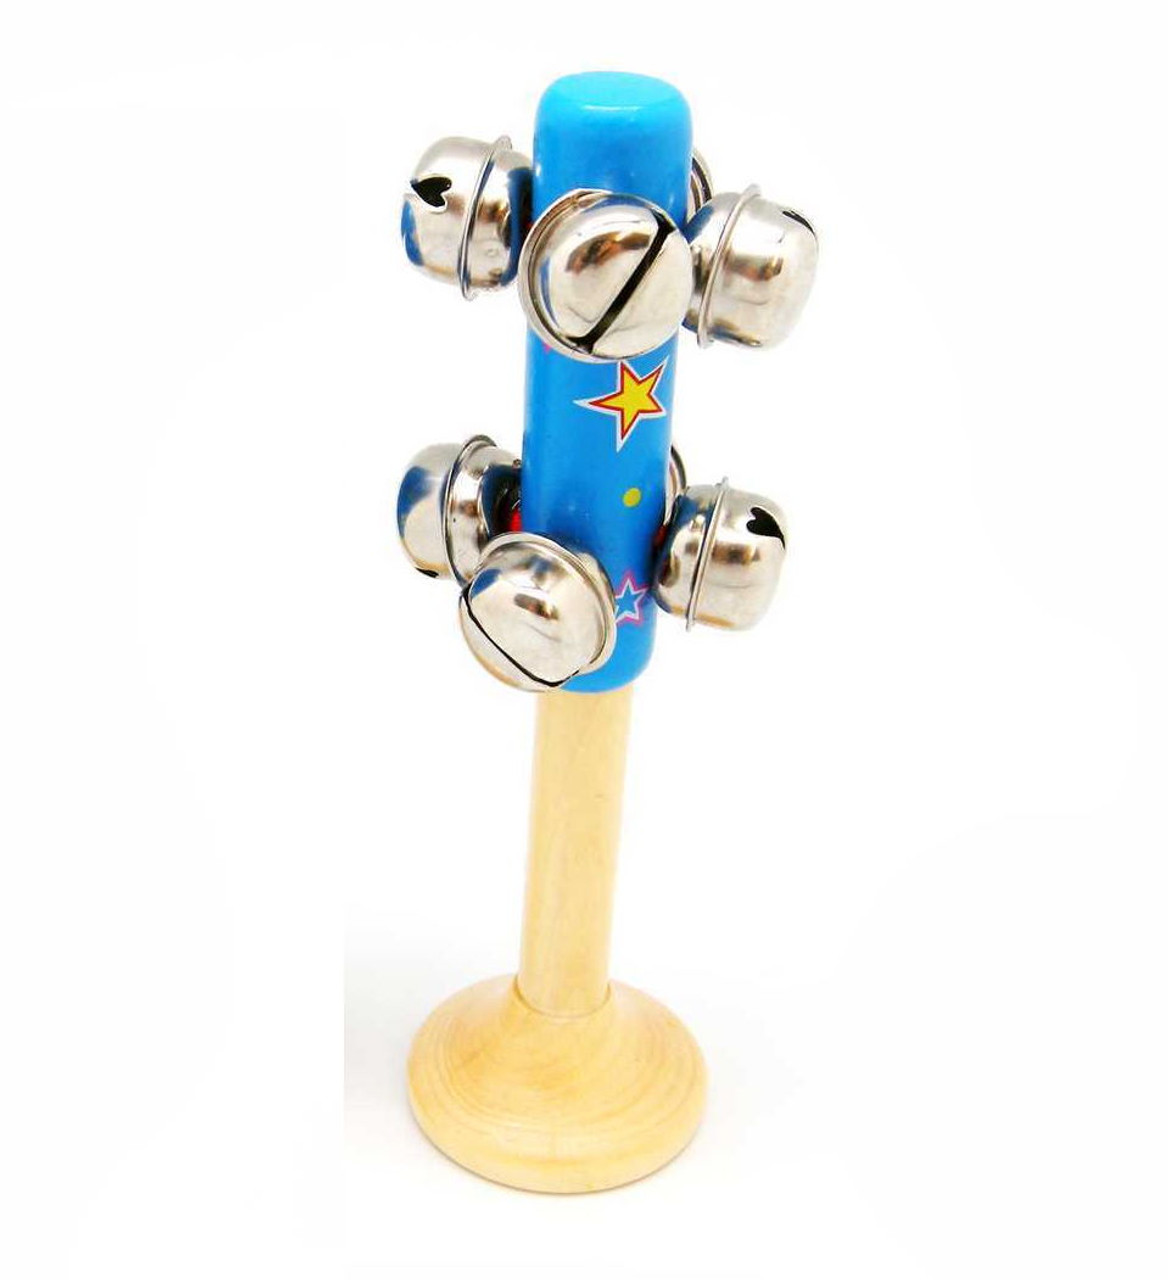 Kaper Kidz Bell Stick at Baby Barn Discounts A classic musical bell stick, loved by little ones. Perfect for little hands, easy to use and is a fantastic toy for little ones who enjoy making music.